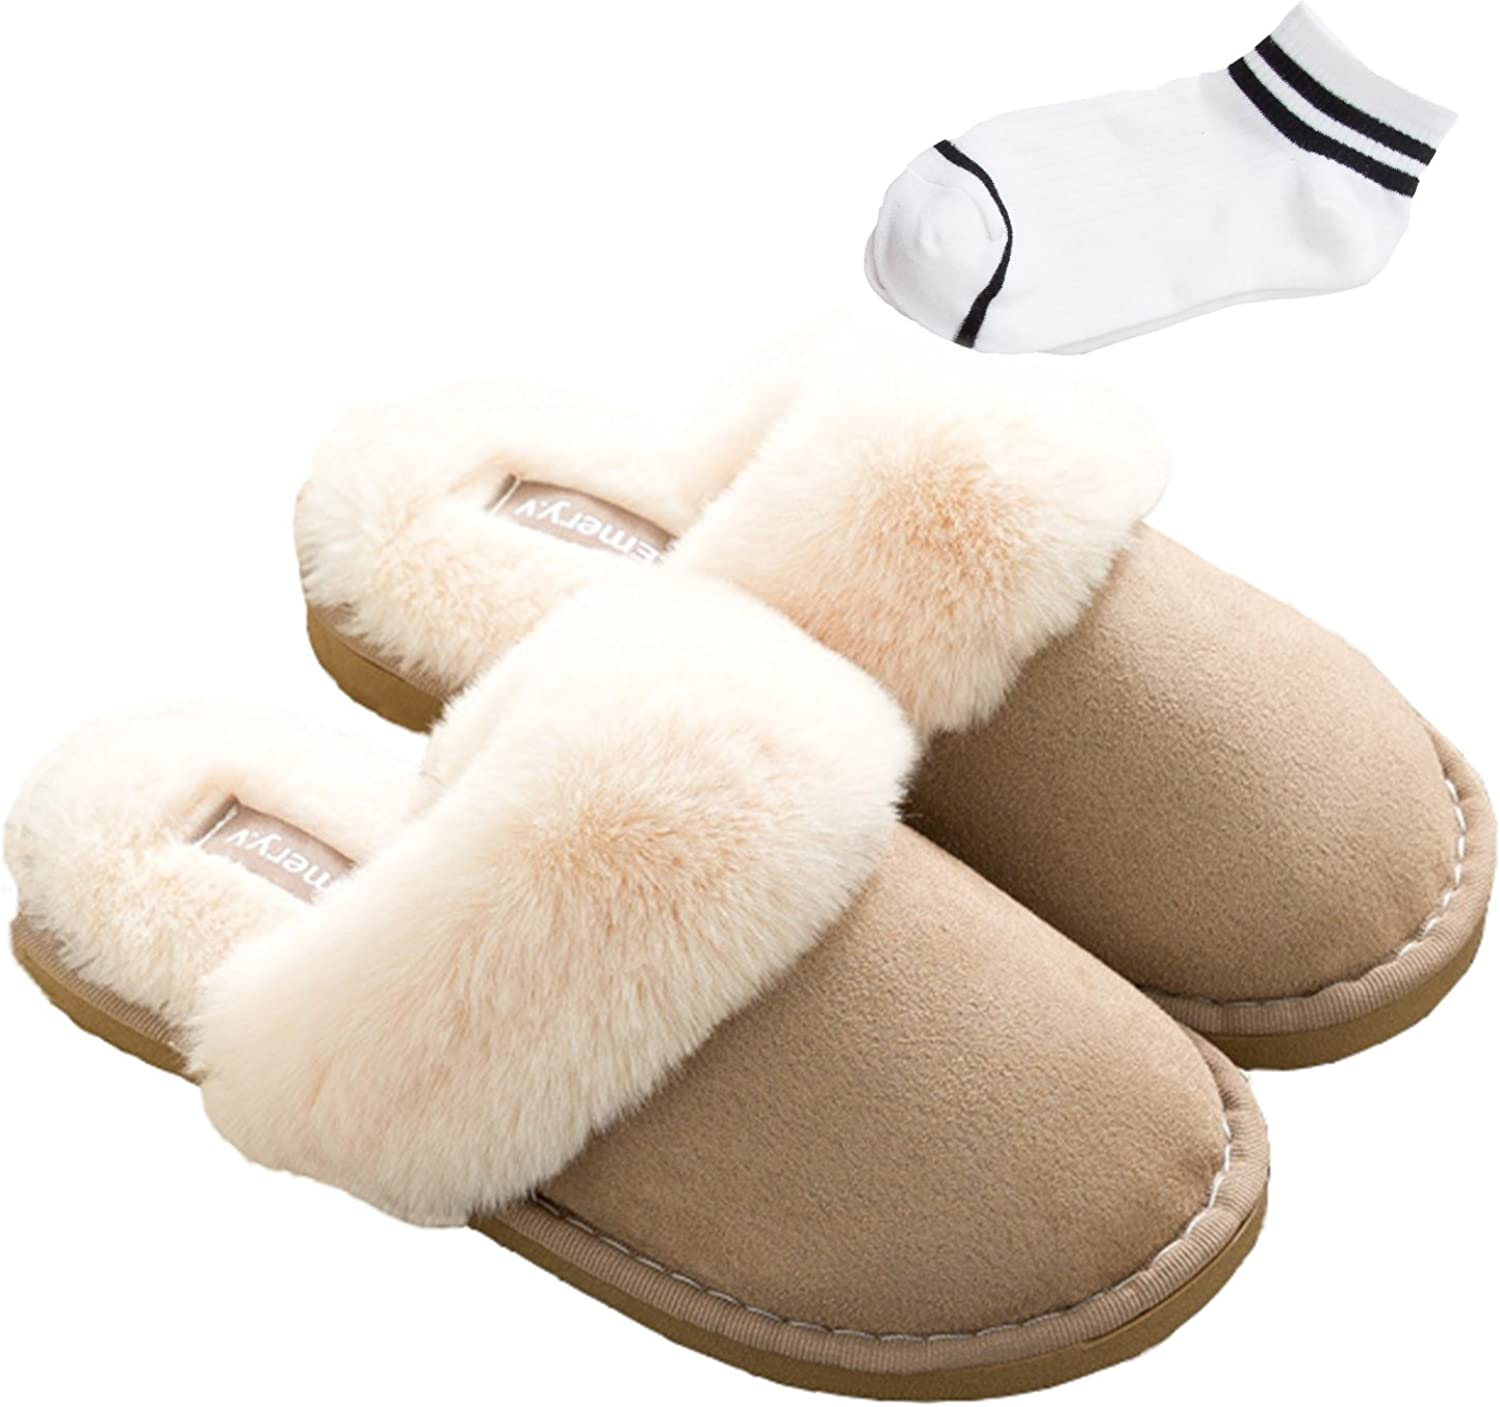 Ufoyer Women's Slip On Slippers with Warm and Comfy Faux Fur and Fluffy Suede for Winter+Womens Socks